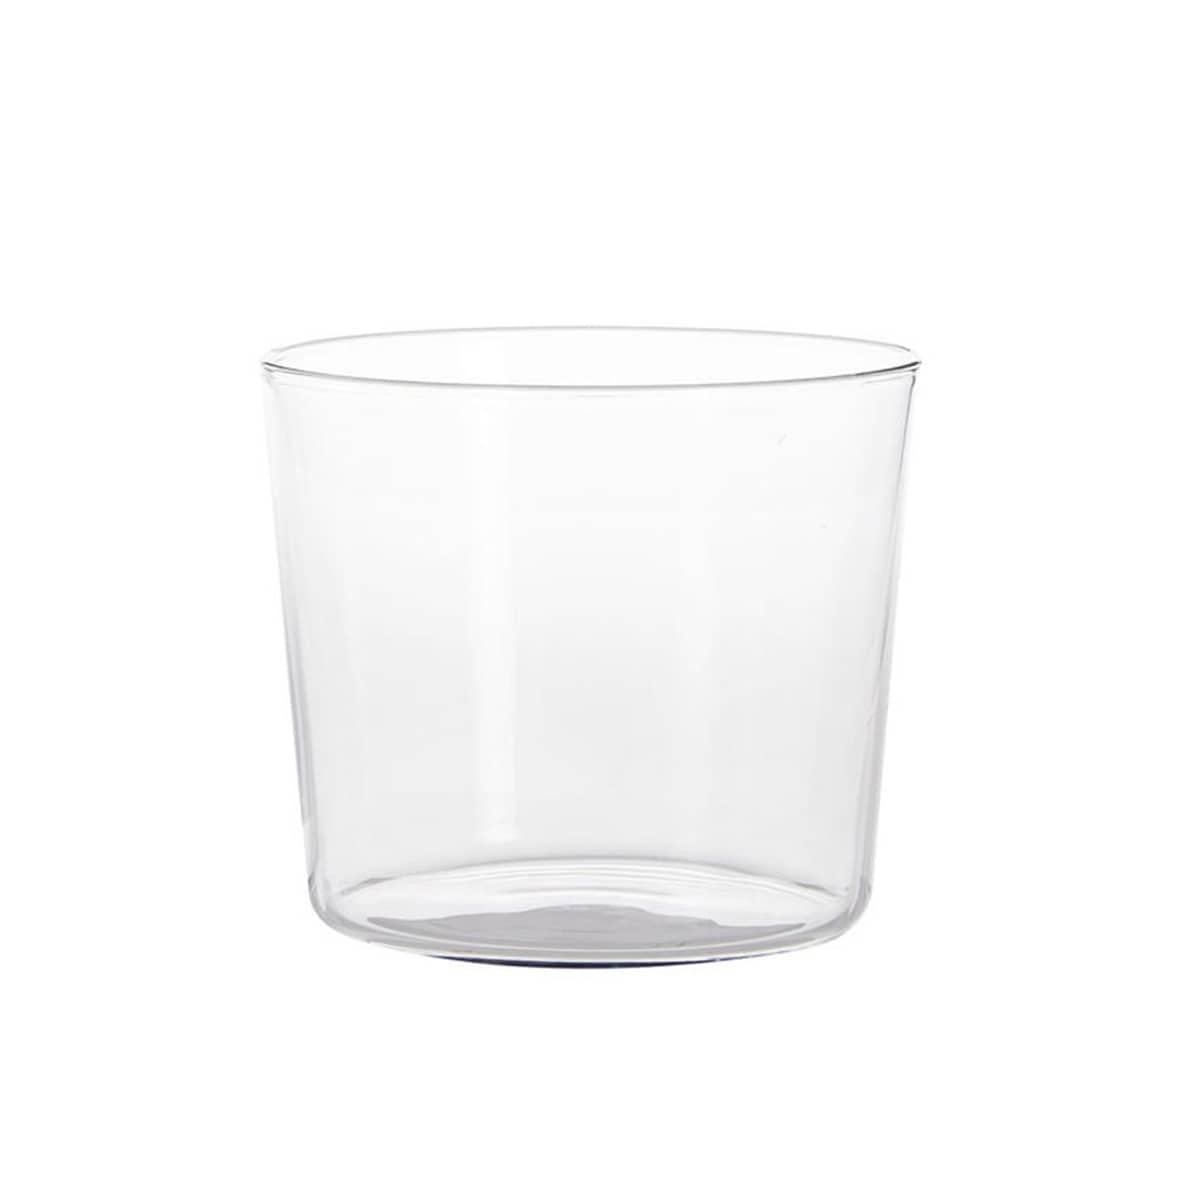 10 Wine Glasses That Can Go in the Dishwasher: gallery image 7